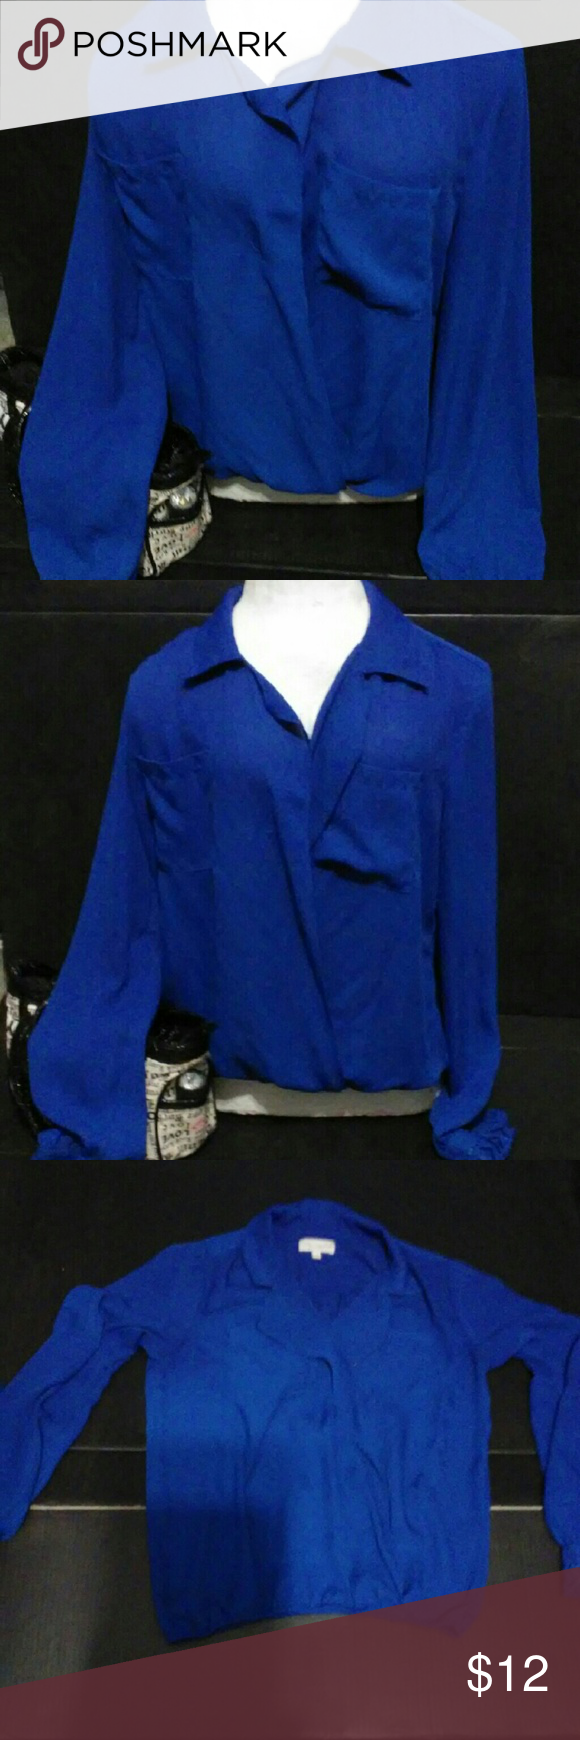 """Women's blouse by """"Empire"""" size large Worn 1 time excellent condition $4 if bundled with something else just ask empire Tops Blouses"""